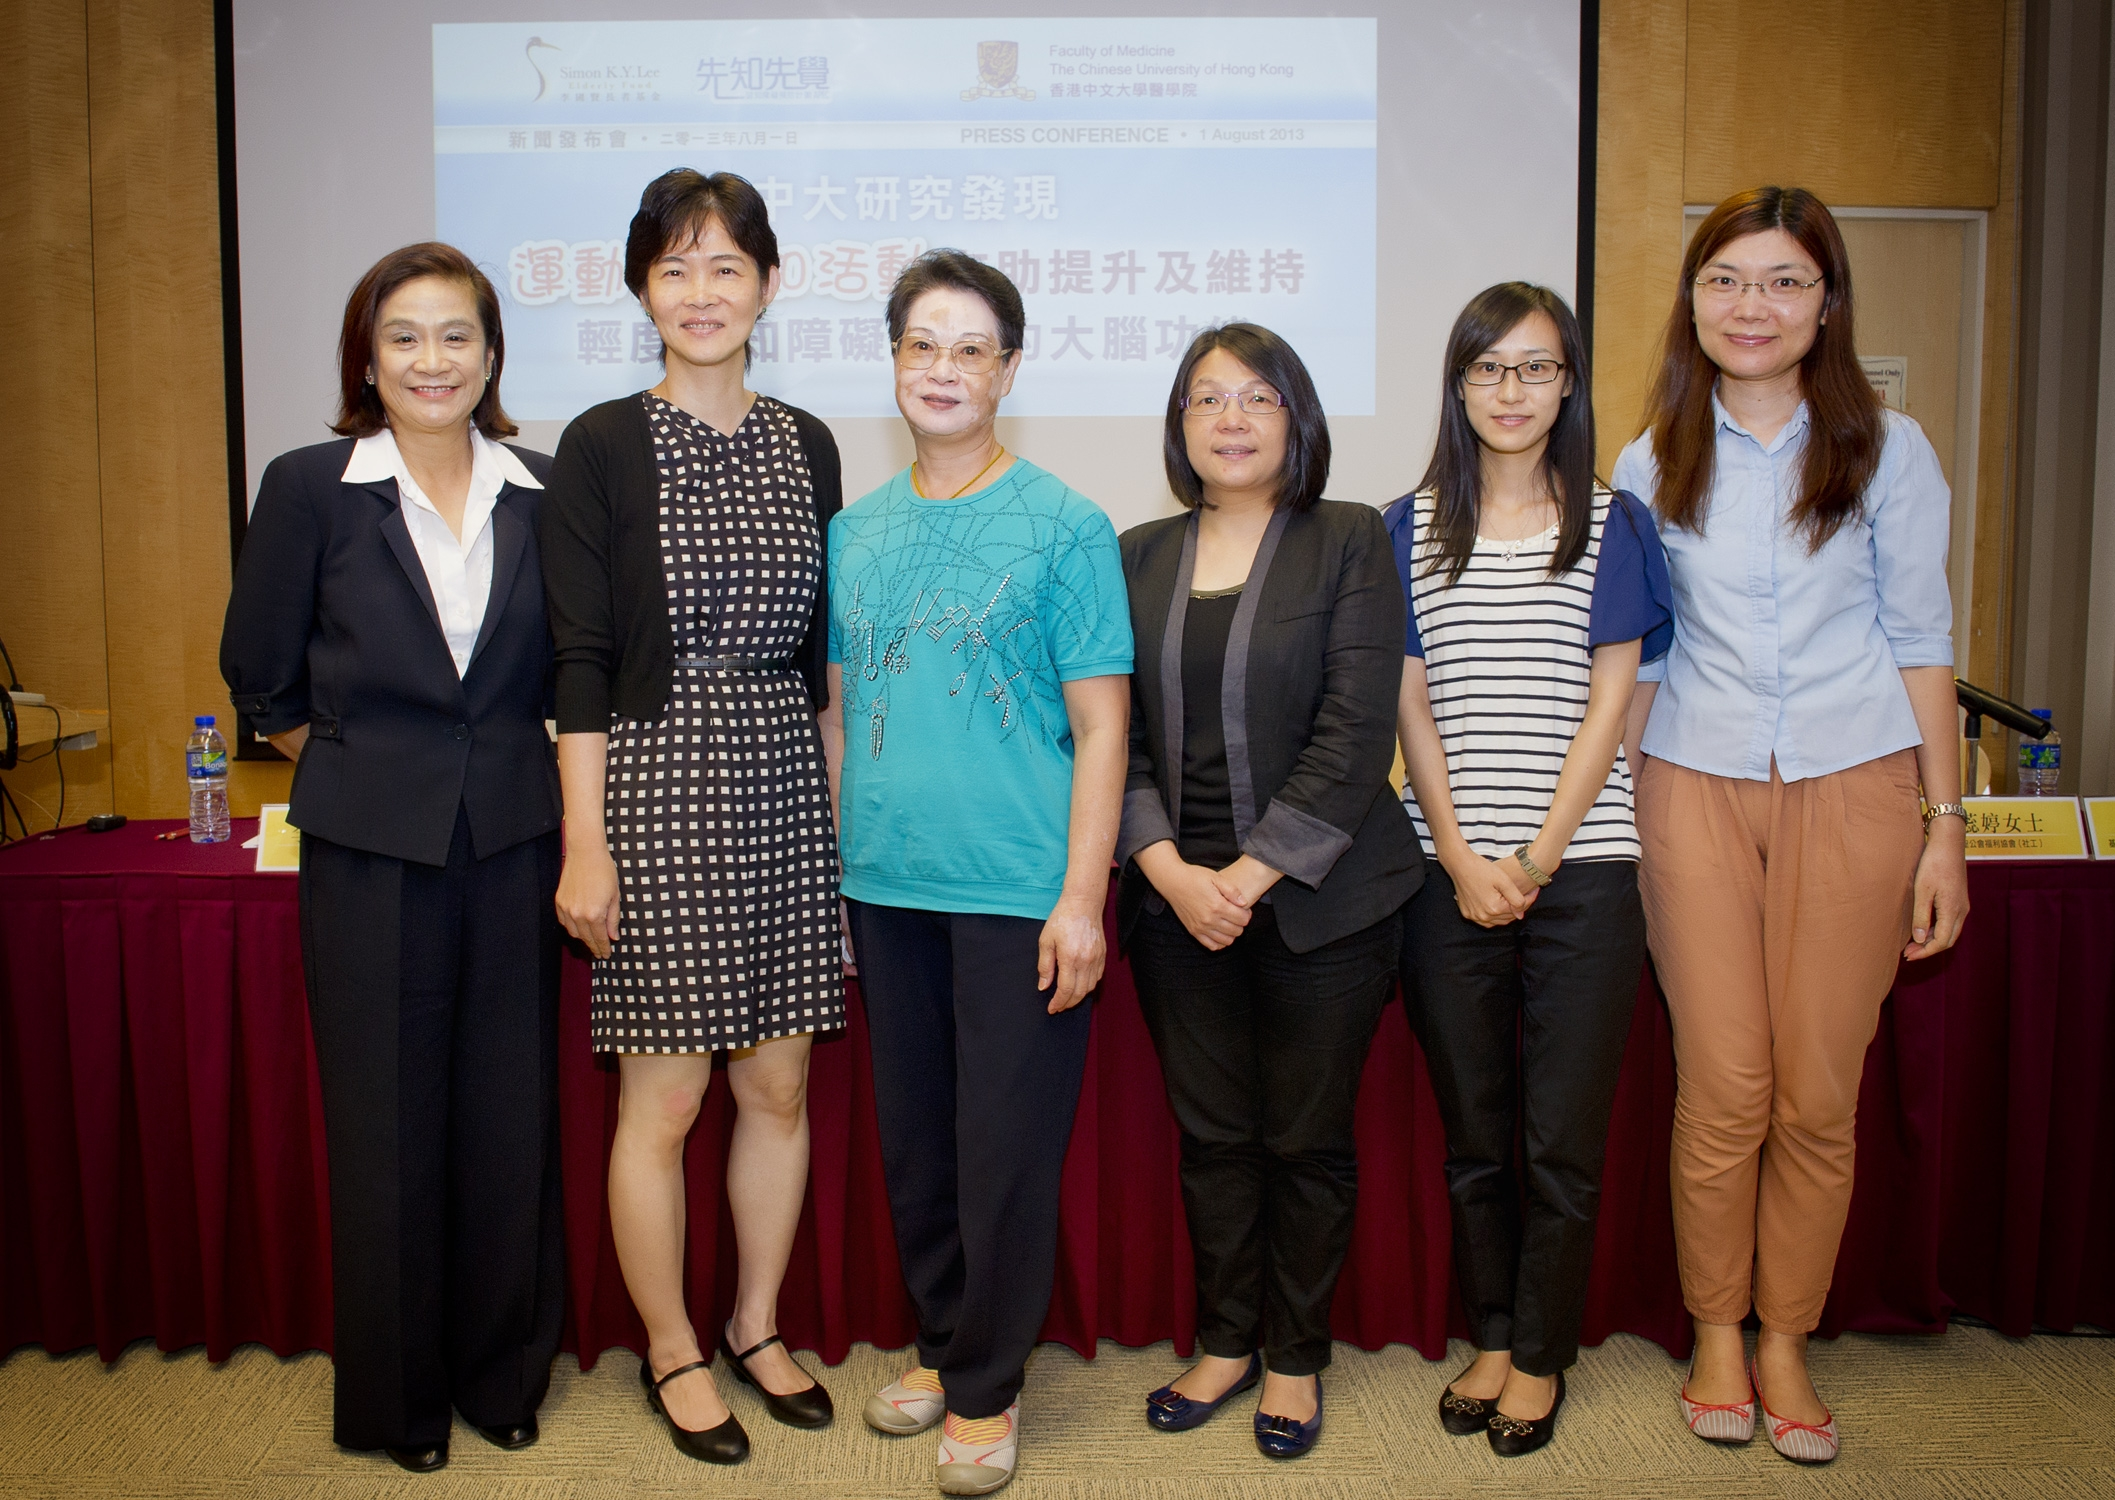 (From left) Ms. Mabel Lee, Board Member, Simon K Y Lee Elderly Fund; Professor Linda Lam, Chairman, Department of Psychiatry, CUHK Faculty of Medicine; Ms Hung Yau Mui, the participant; Ms. Joe Wong, District Supervisor (Elderly Service), Baptist Oi Kwan Social Service and the representatives from two NGOs